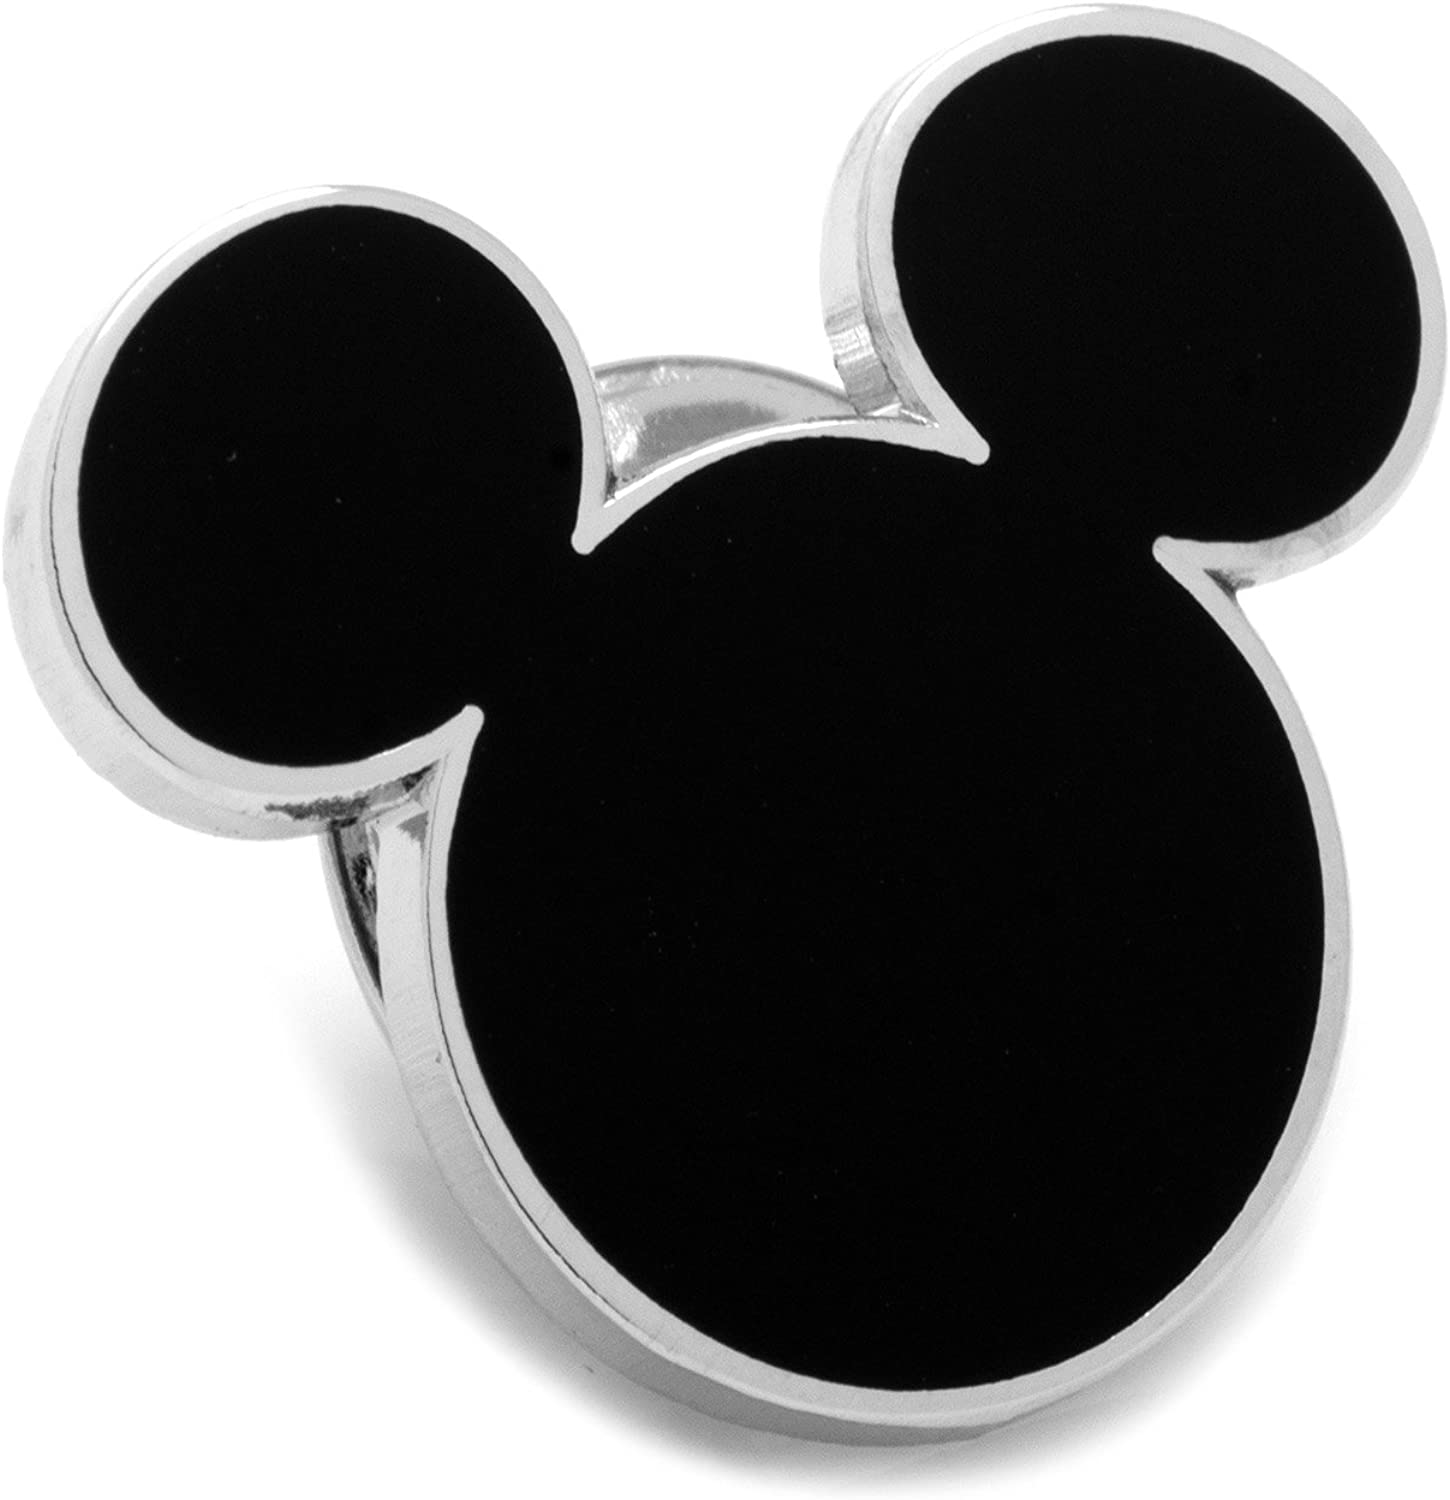 Disney Black Mickey Mouse Silhouette Lapel Pin, Officially Licensed